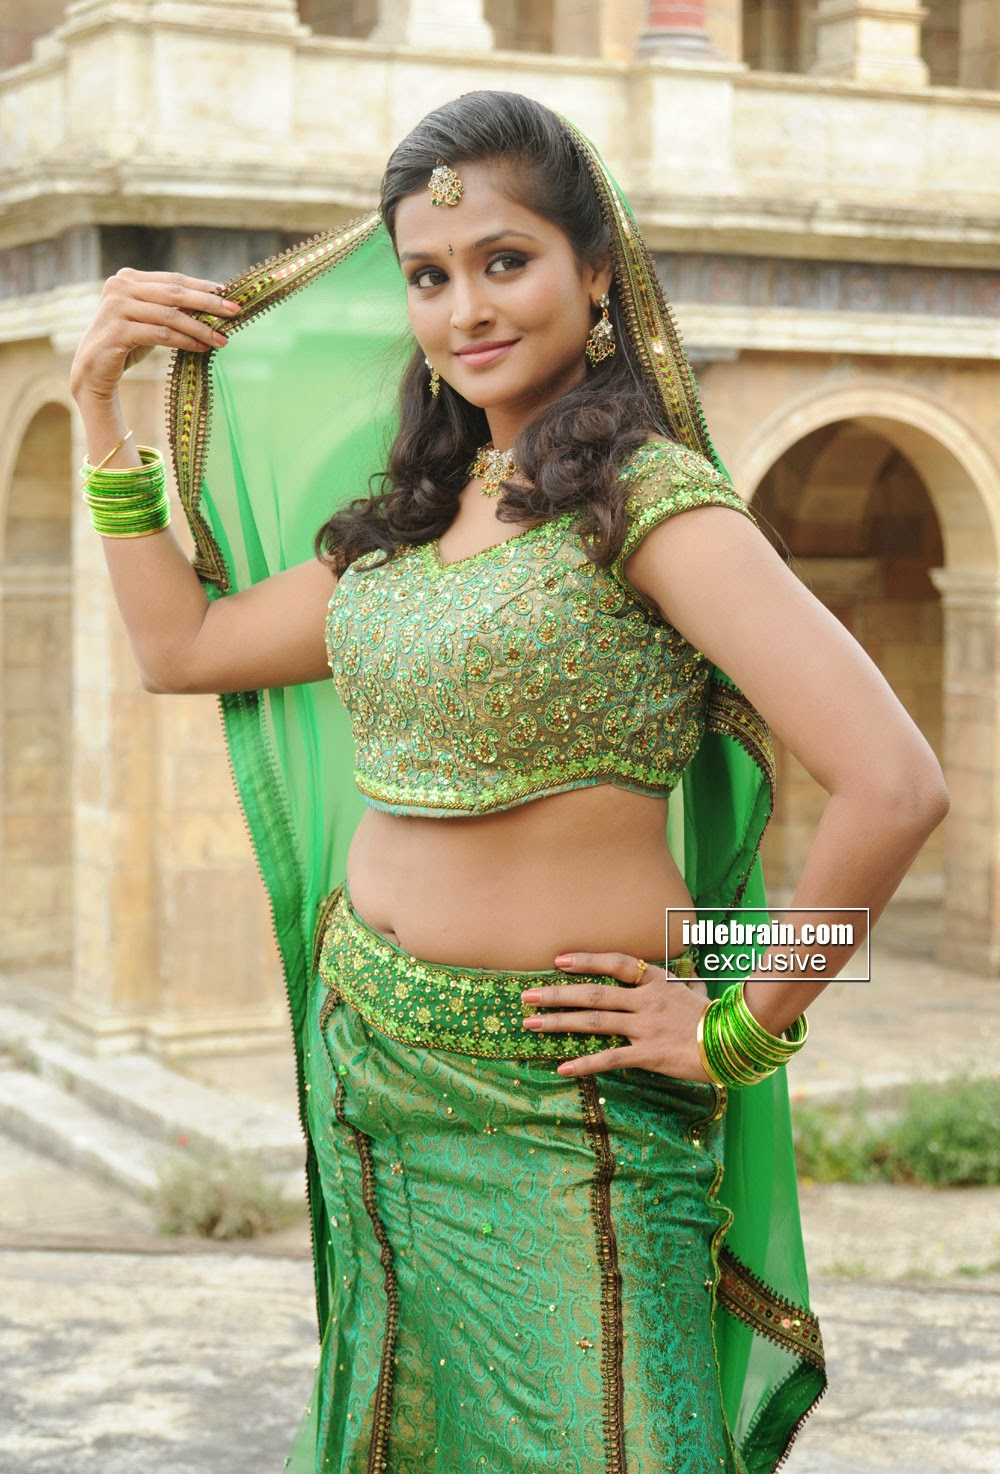 What that Remya nambeesan actress porn photos sense